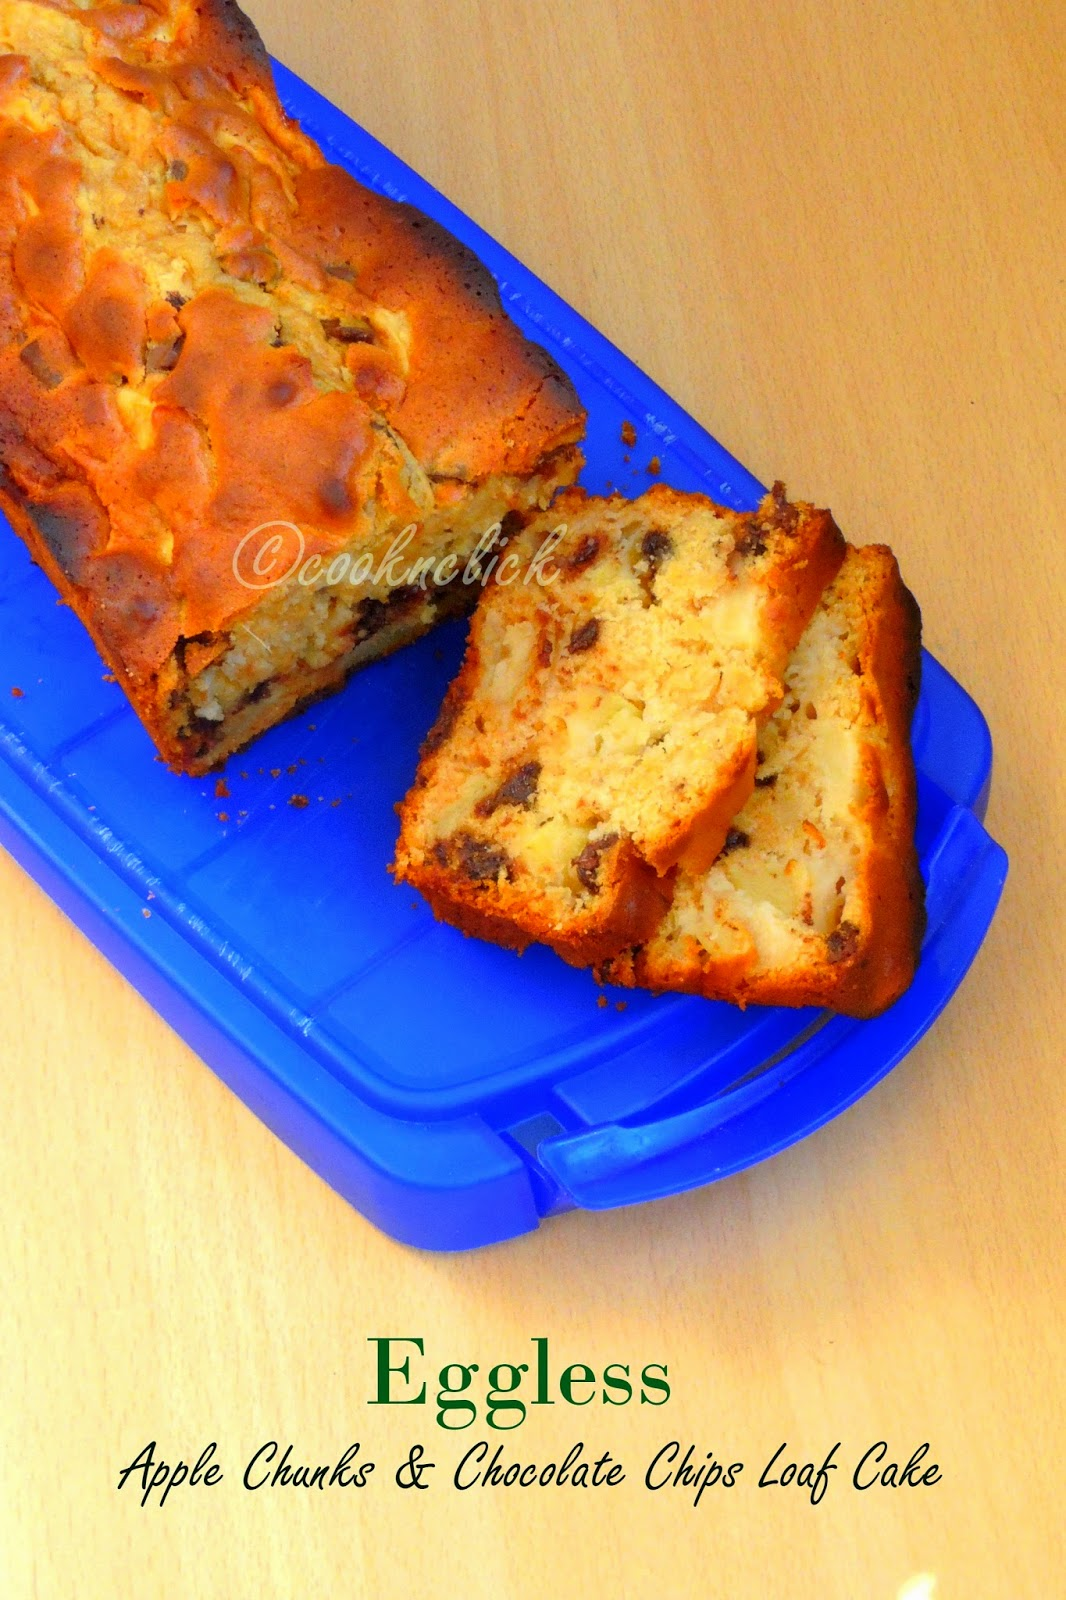 Chunky apple and chocolate chips loaf cake - Eggless